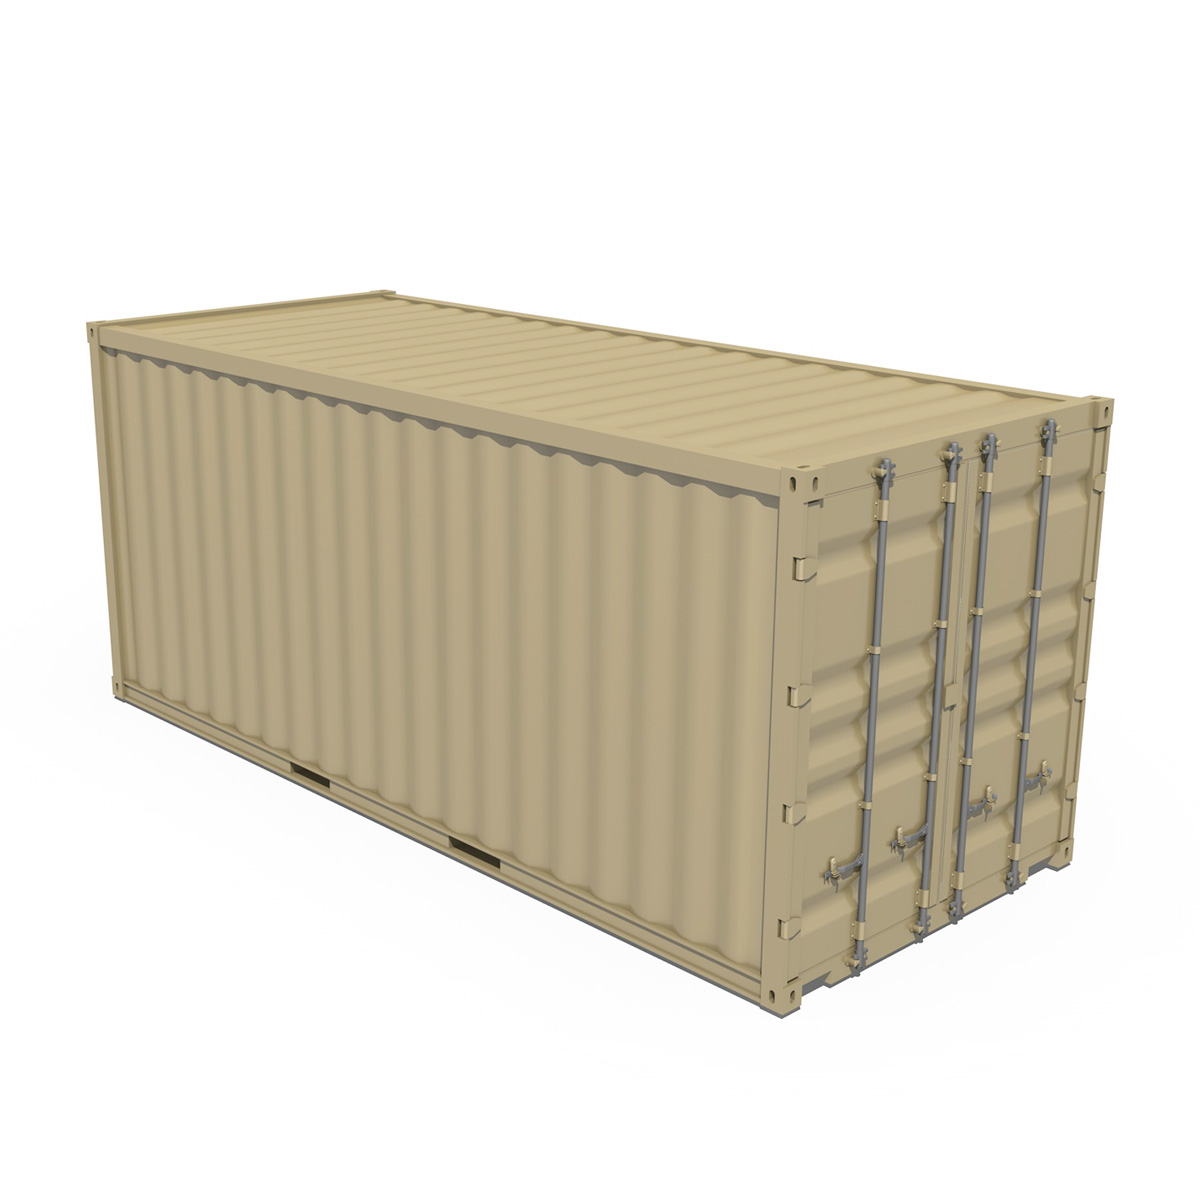 20ft shipping container 3d model 3ds fbx c4d lwo obj 252259